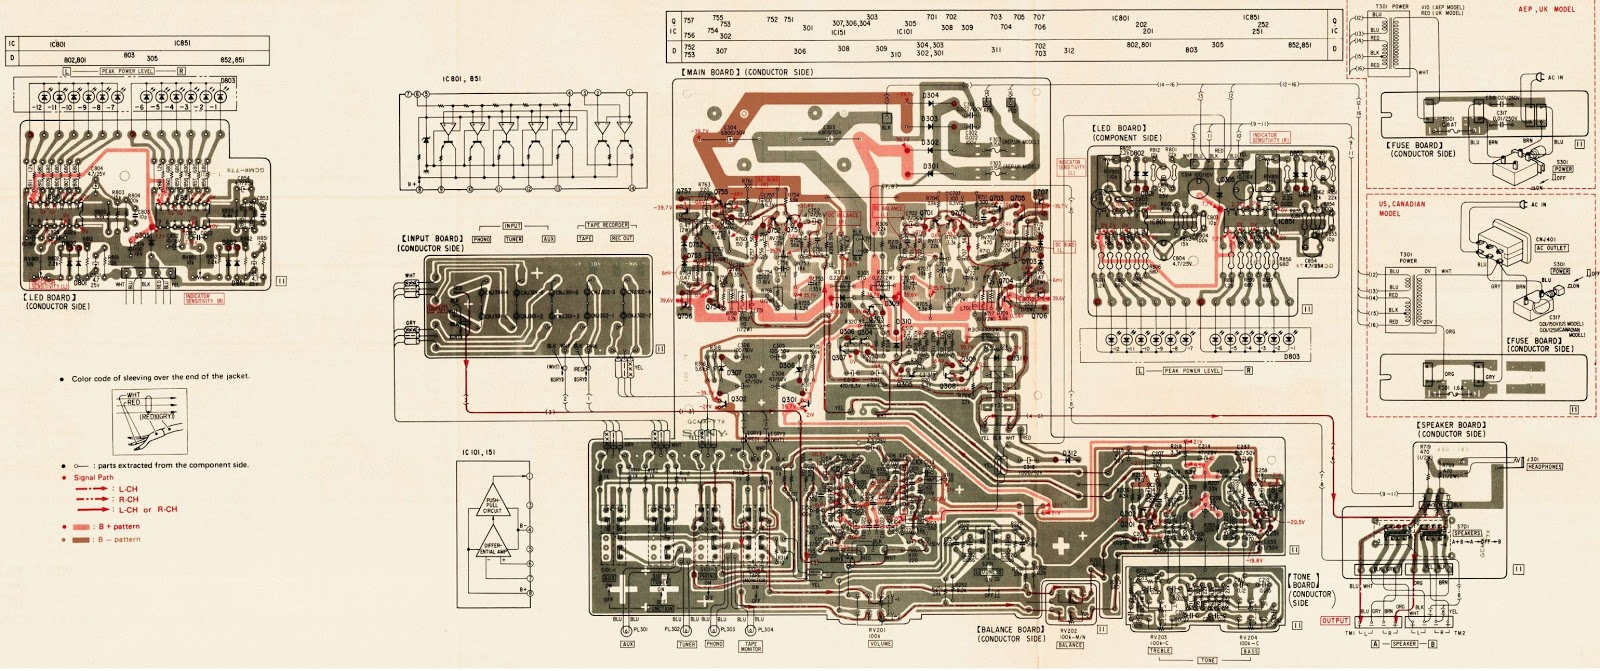 Electrotechnician: Sony TA F30 Integrated Stereo Amplifier  Circuit Diagram and wiring diagram